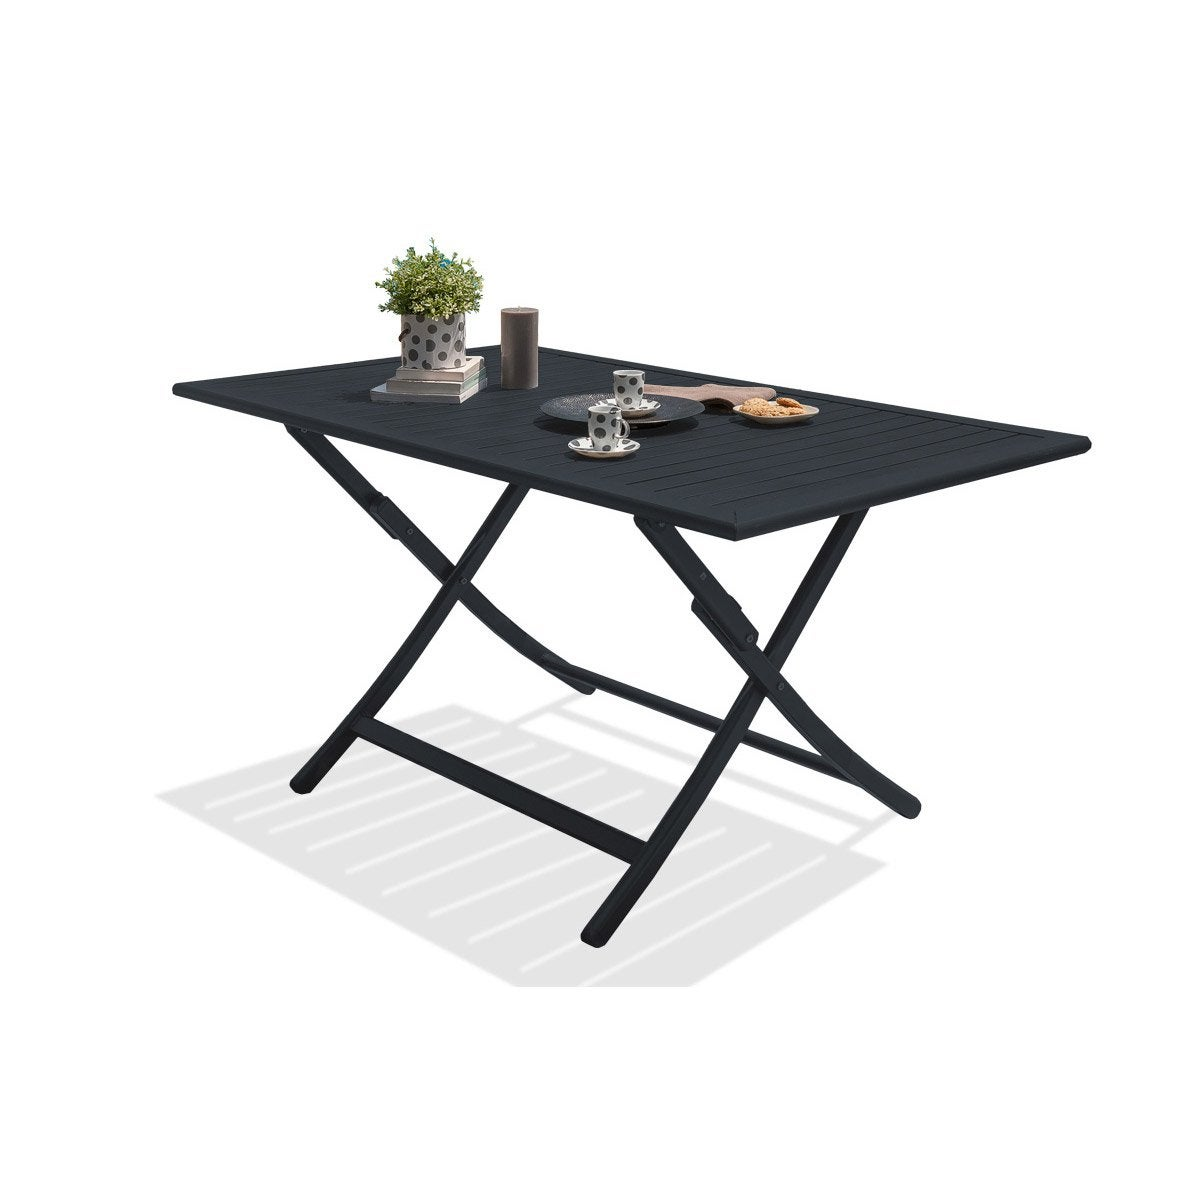 Table de jardin marius rectangulaire gris anthracite 4 6 - Leroy merlin table pliante ...